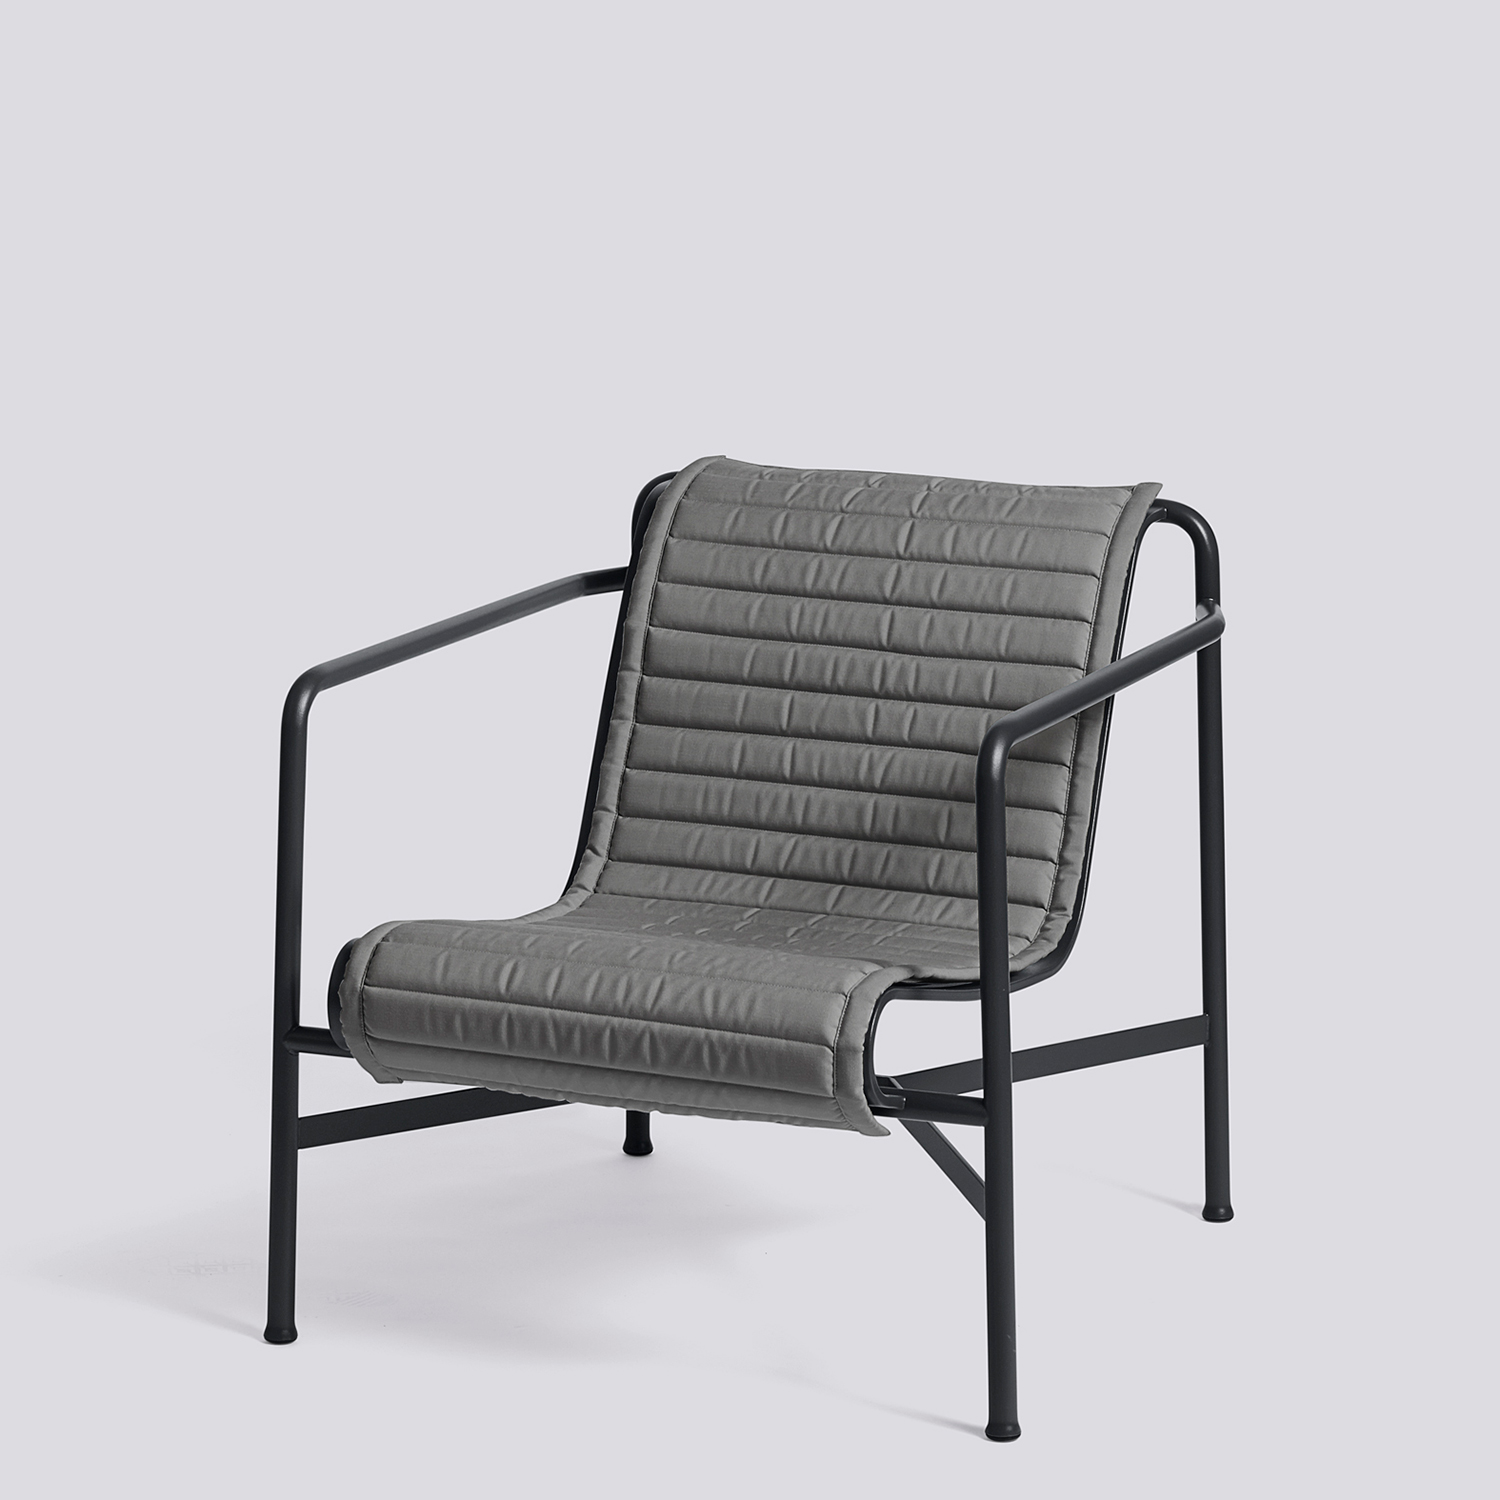 Palissade Quiltad dyna loungestol låg, anthracite